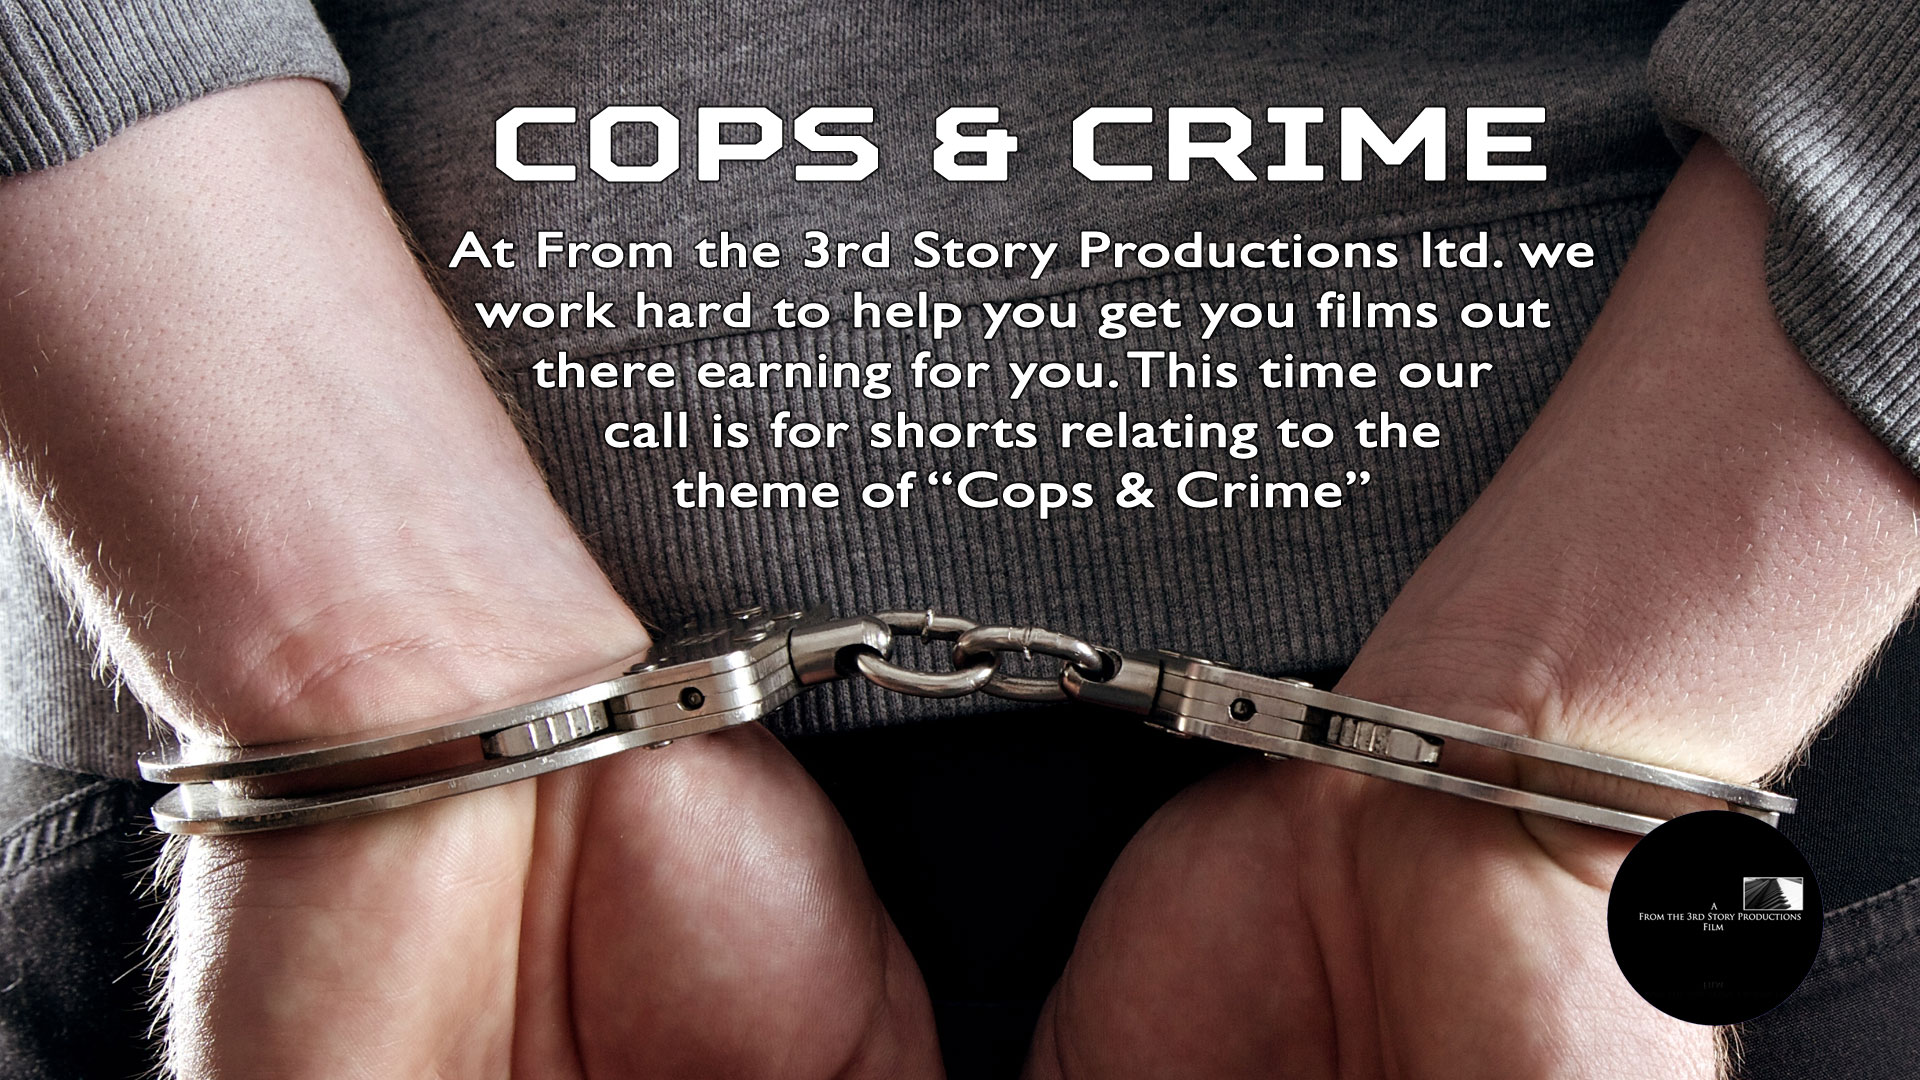 Cops and Crime - A Just a few more Chunks to go